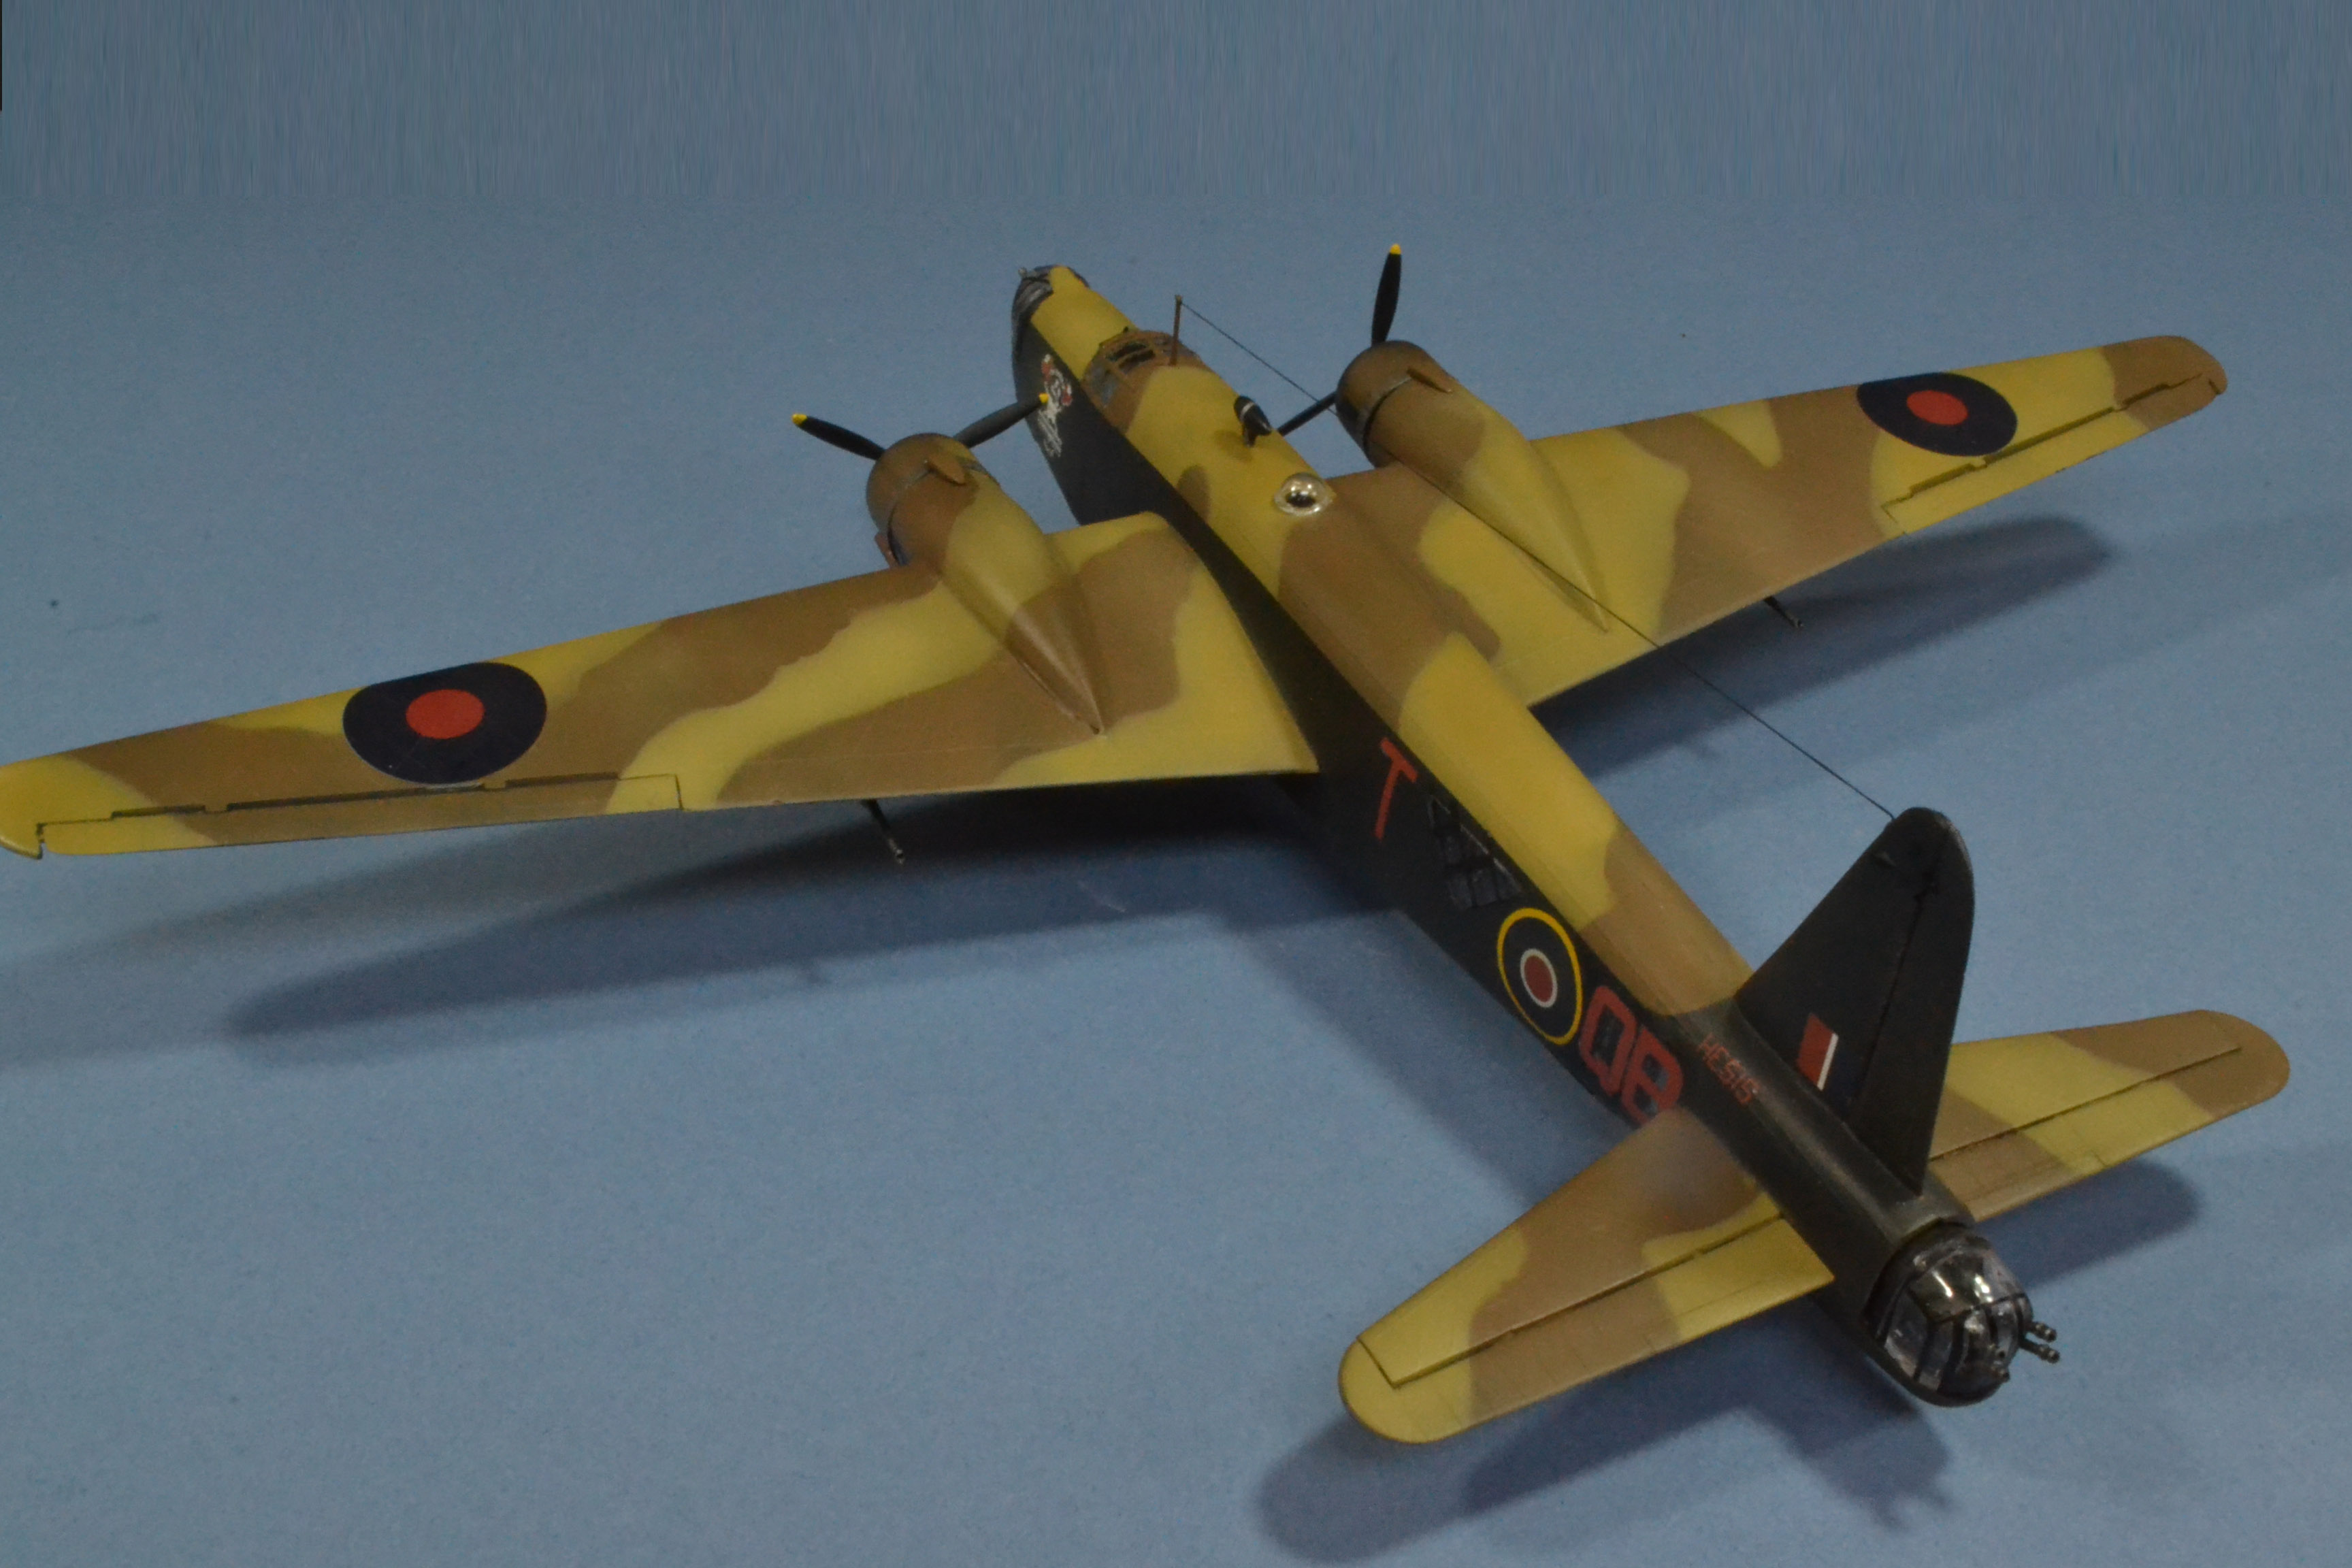 Vickers Wellington X, 424 (Canadian) Squadron, North Africa 1943